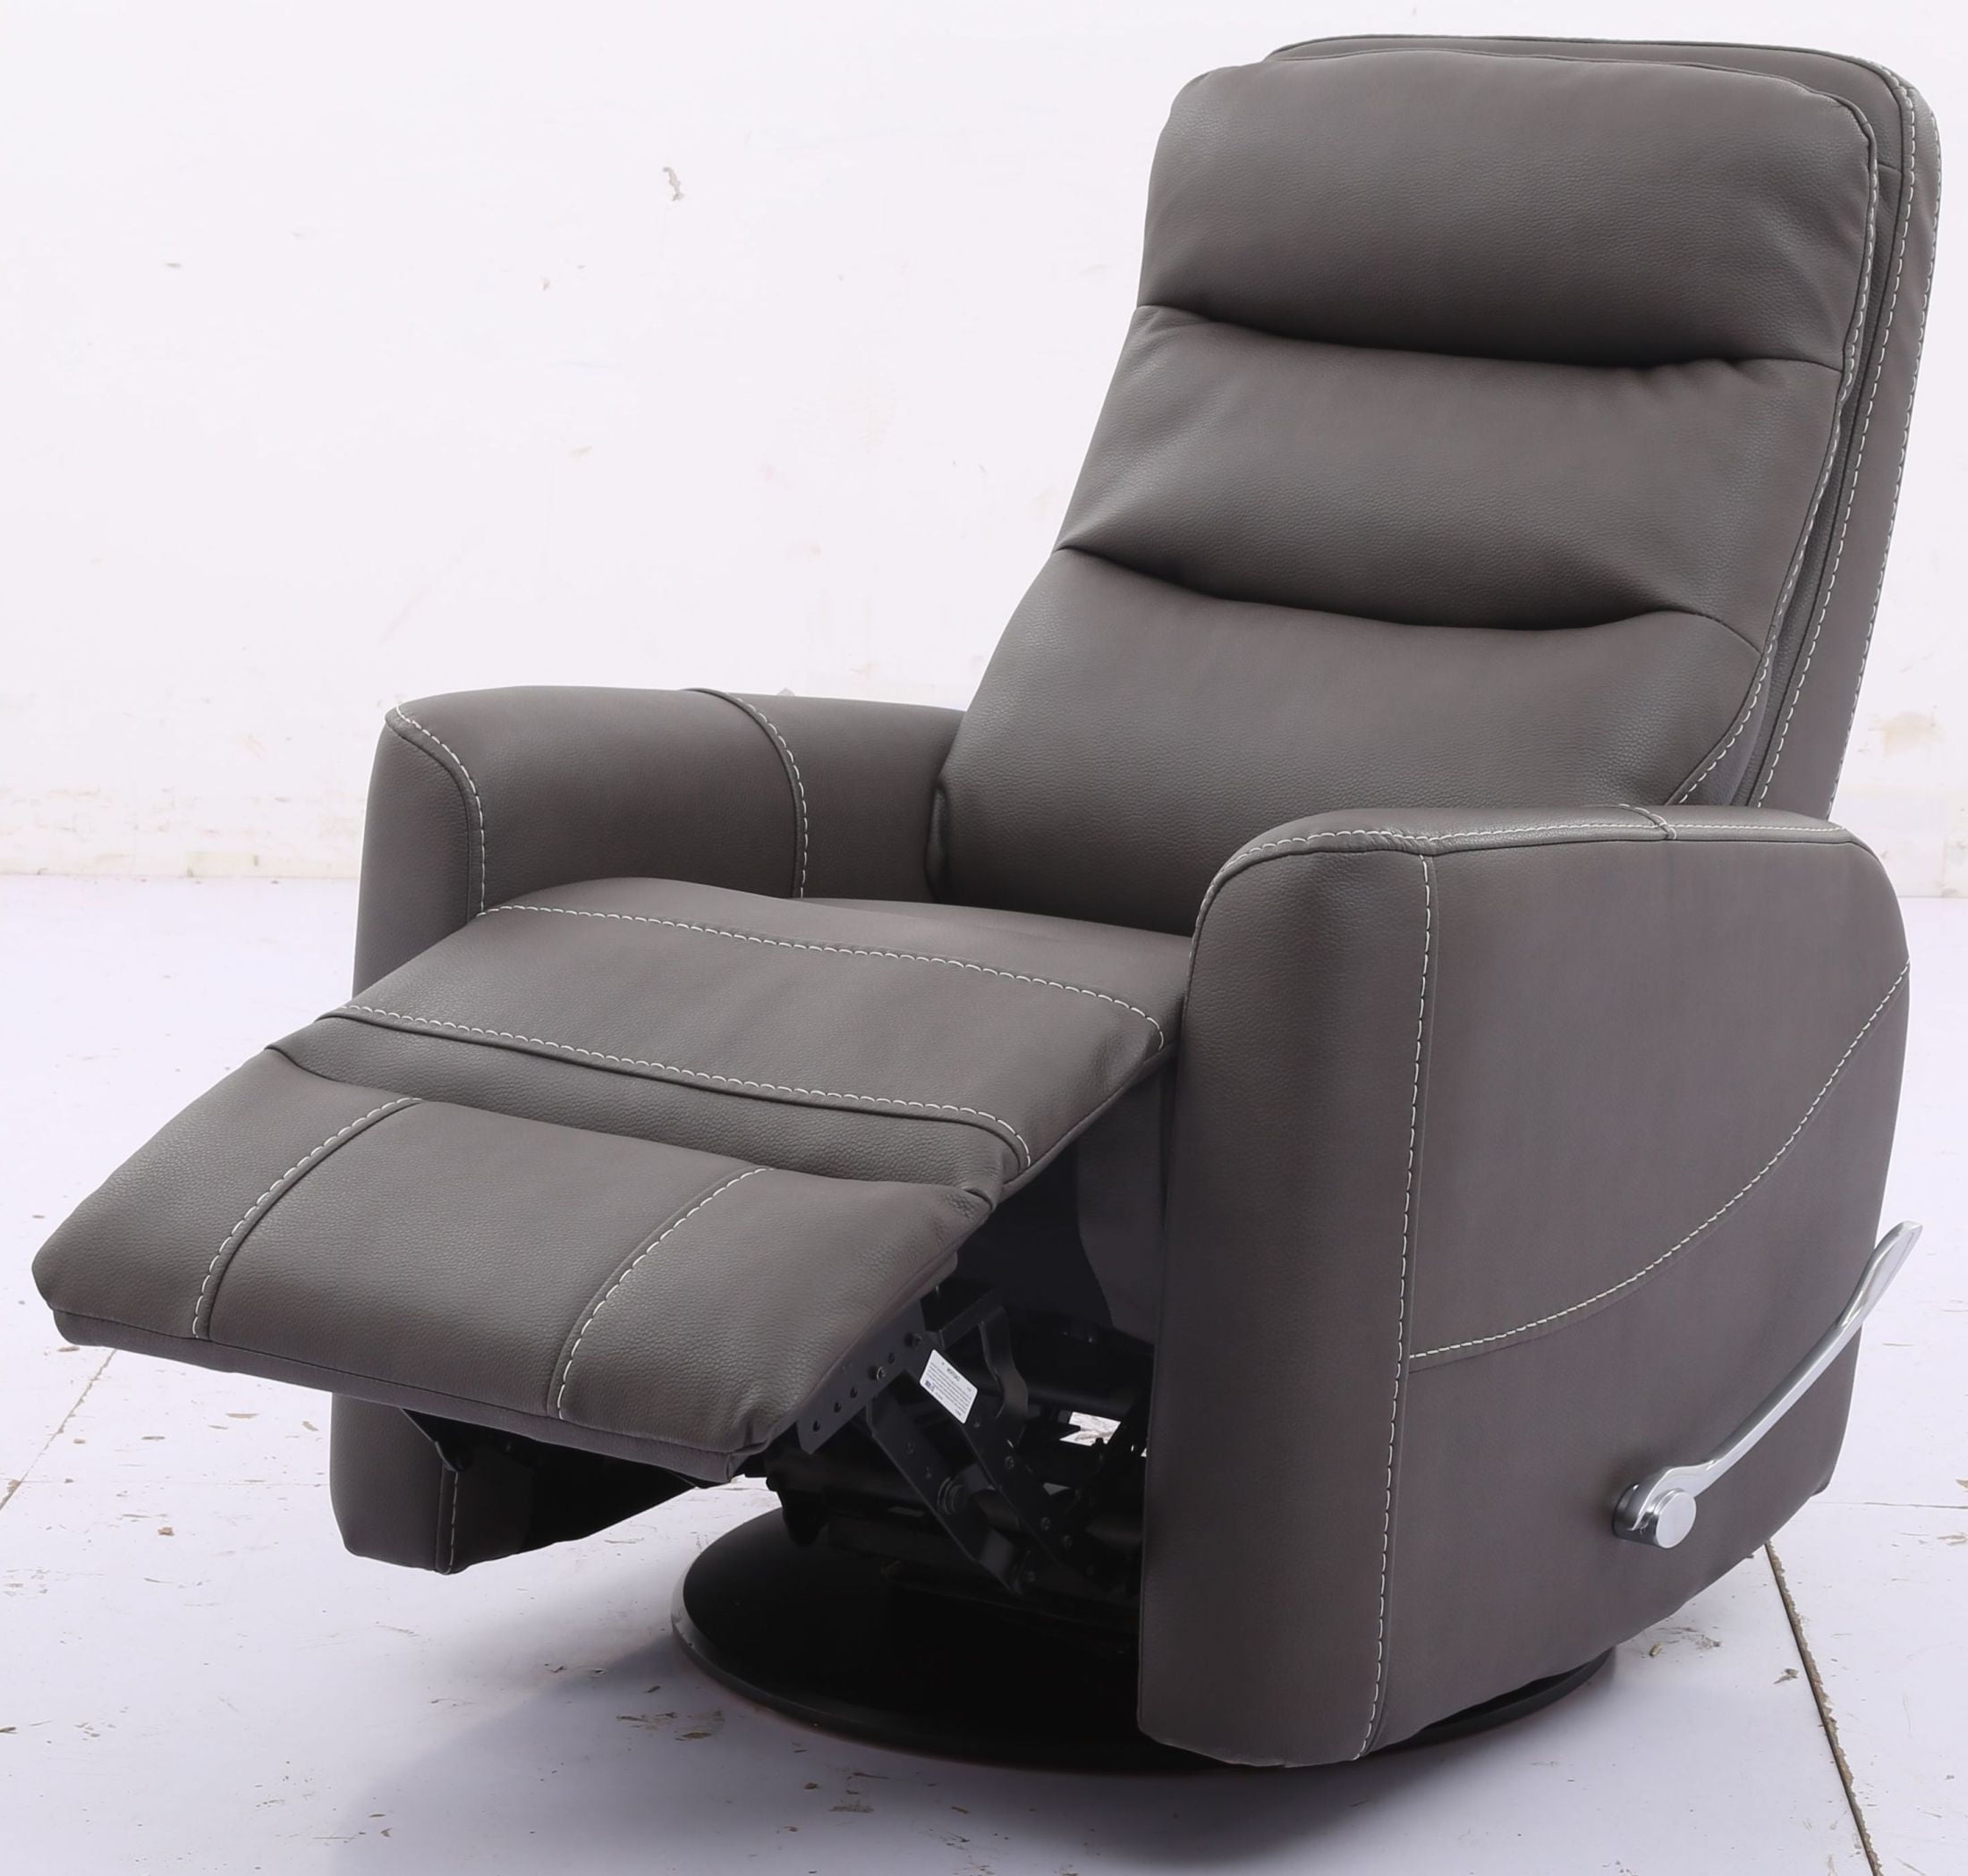 Hercules Haze Swivel Glider Recliner With Articulating Headrest From Regarding Well Known Hercules Oyster Swivel Glider Recliners (View 8 of 20)